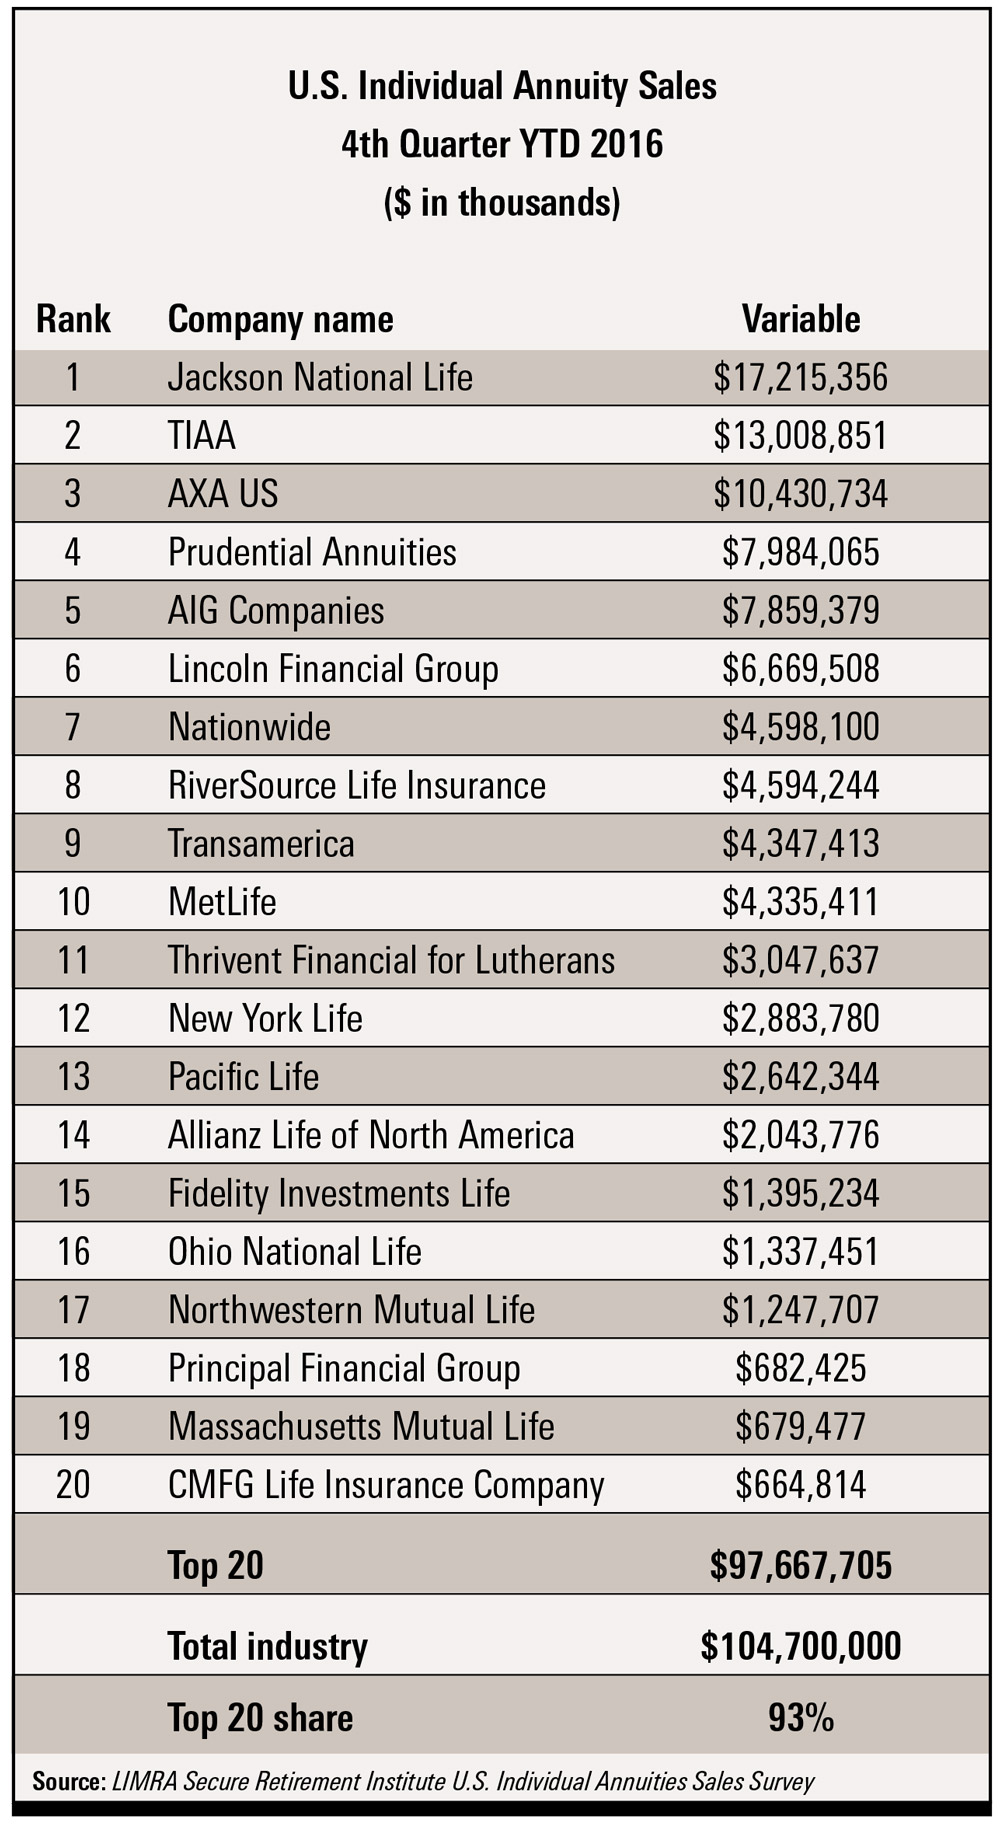 Top 20 Companies for Variable Annuity Sales